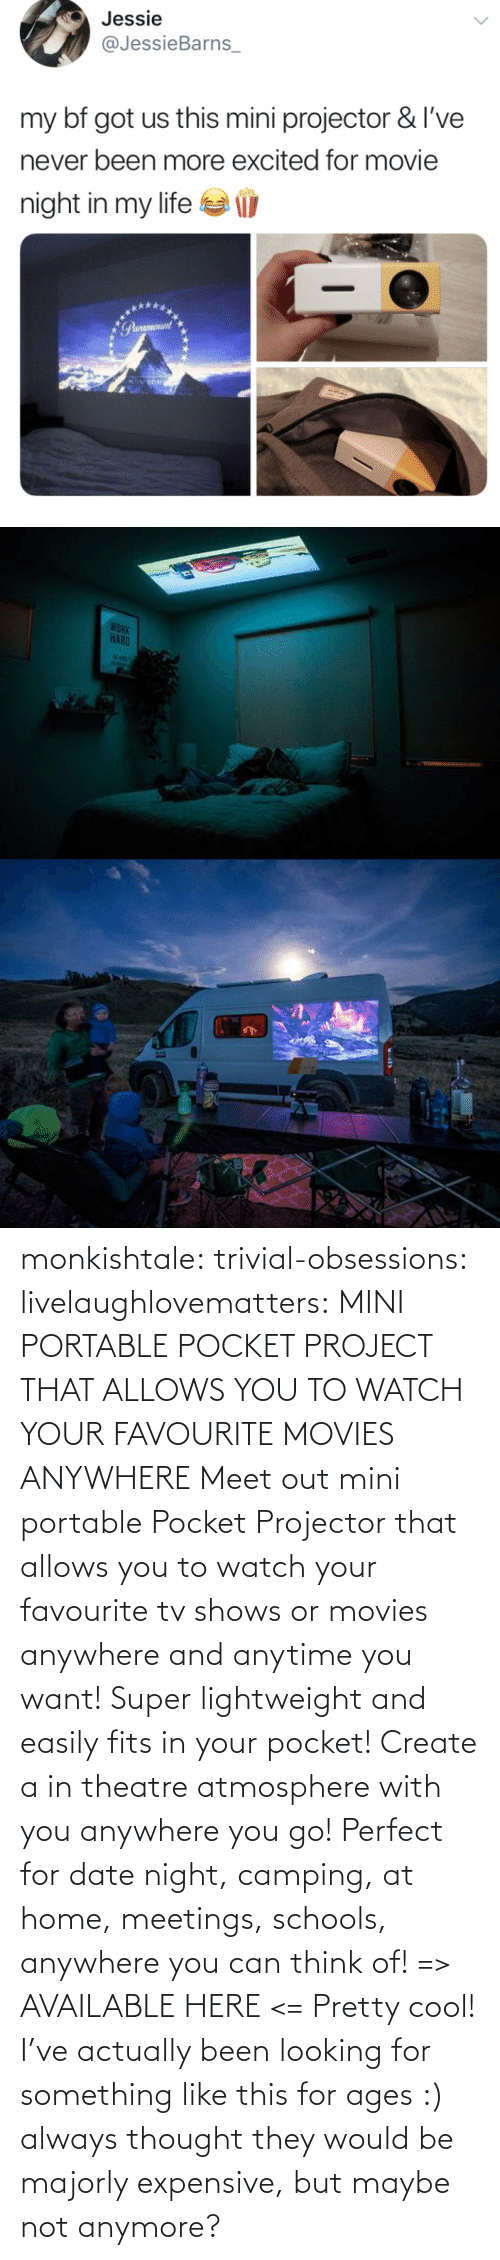 pretty: monkishtale: trivial-obsessions:   livelaughlovematters:   MINI PORTABLE POCKET PROJECT THAT ALLOWS YOU TO WATCH YOUR FAVOURITE MOVIES ANYWHERE Meet out mini portable Pocket Projector that allows you to watch your favourite tv shows or movies anywhere and anytime you want! Super lightweight and easily fits in your pocket! Create a in theatre atmosphere with you anywhere you go! Perfect for date night, camping, at home, meetings, schools, anywhere you can think of! => AVAILABLE HERE <=    Pretty cool!    I've actually been looking for something like this for ages :) always thought they would be majorly expensive, but maybe not anymore?